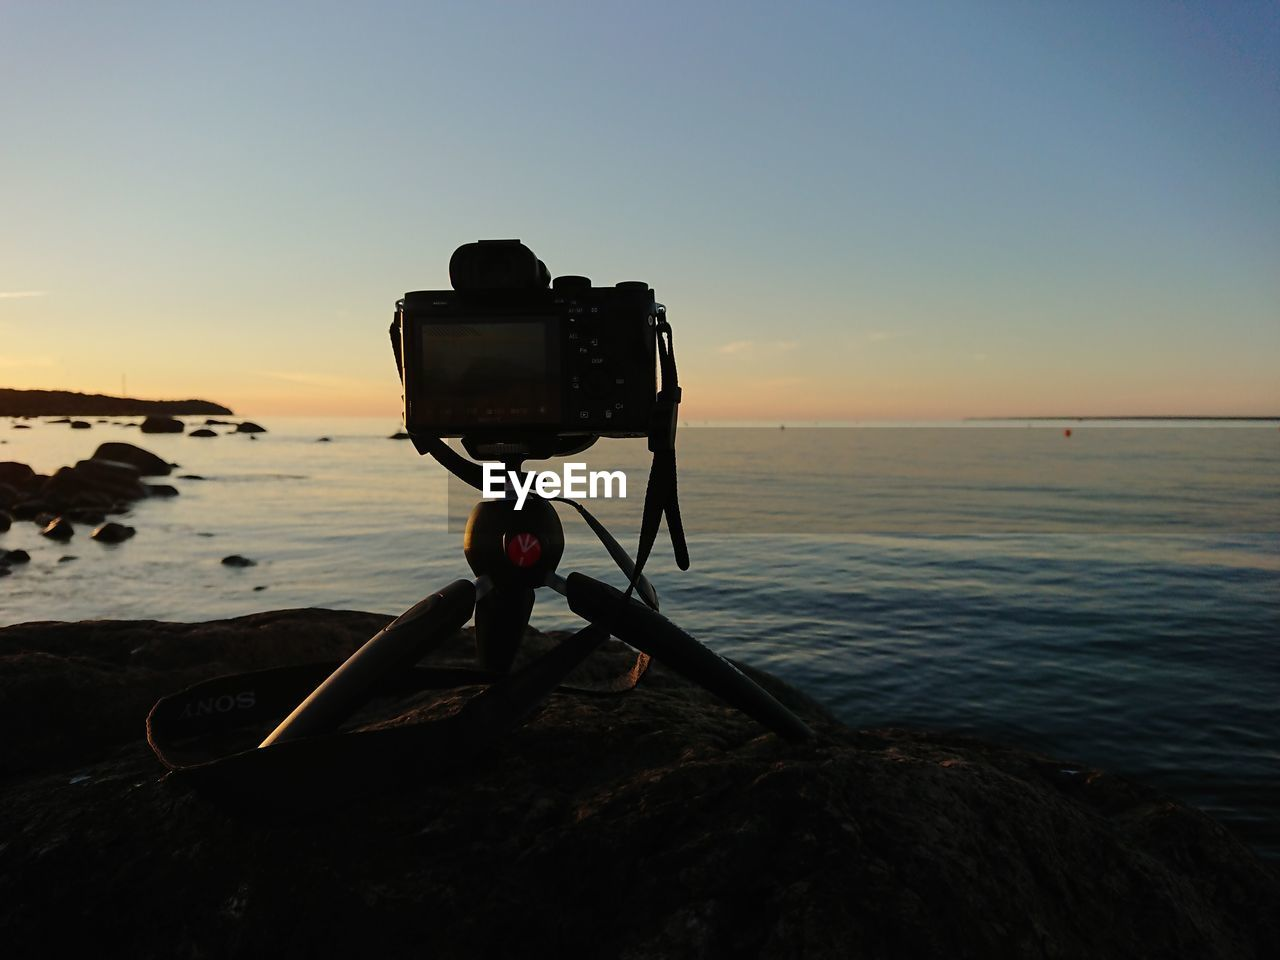 sunset, photography themes, camera - photographic equipment, sea, technology, water, nature, beauty in nature, digital camera, photographing, digital single-lens reflex camera, tranquil scene, scenics, no people, horizon over water, tranquility, sky, outdoors, camera, clear sky, slr camera, close-up, day